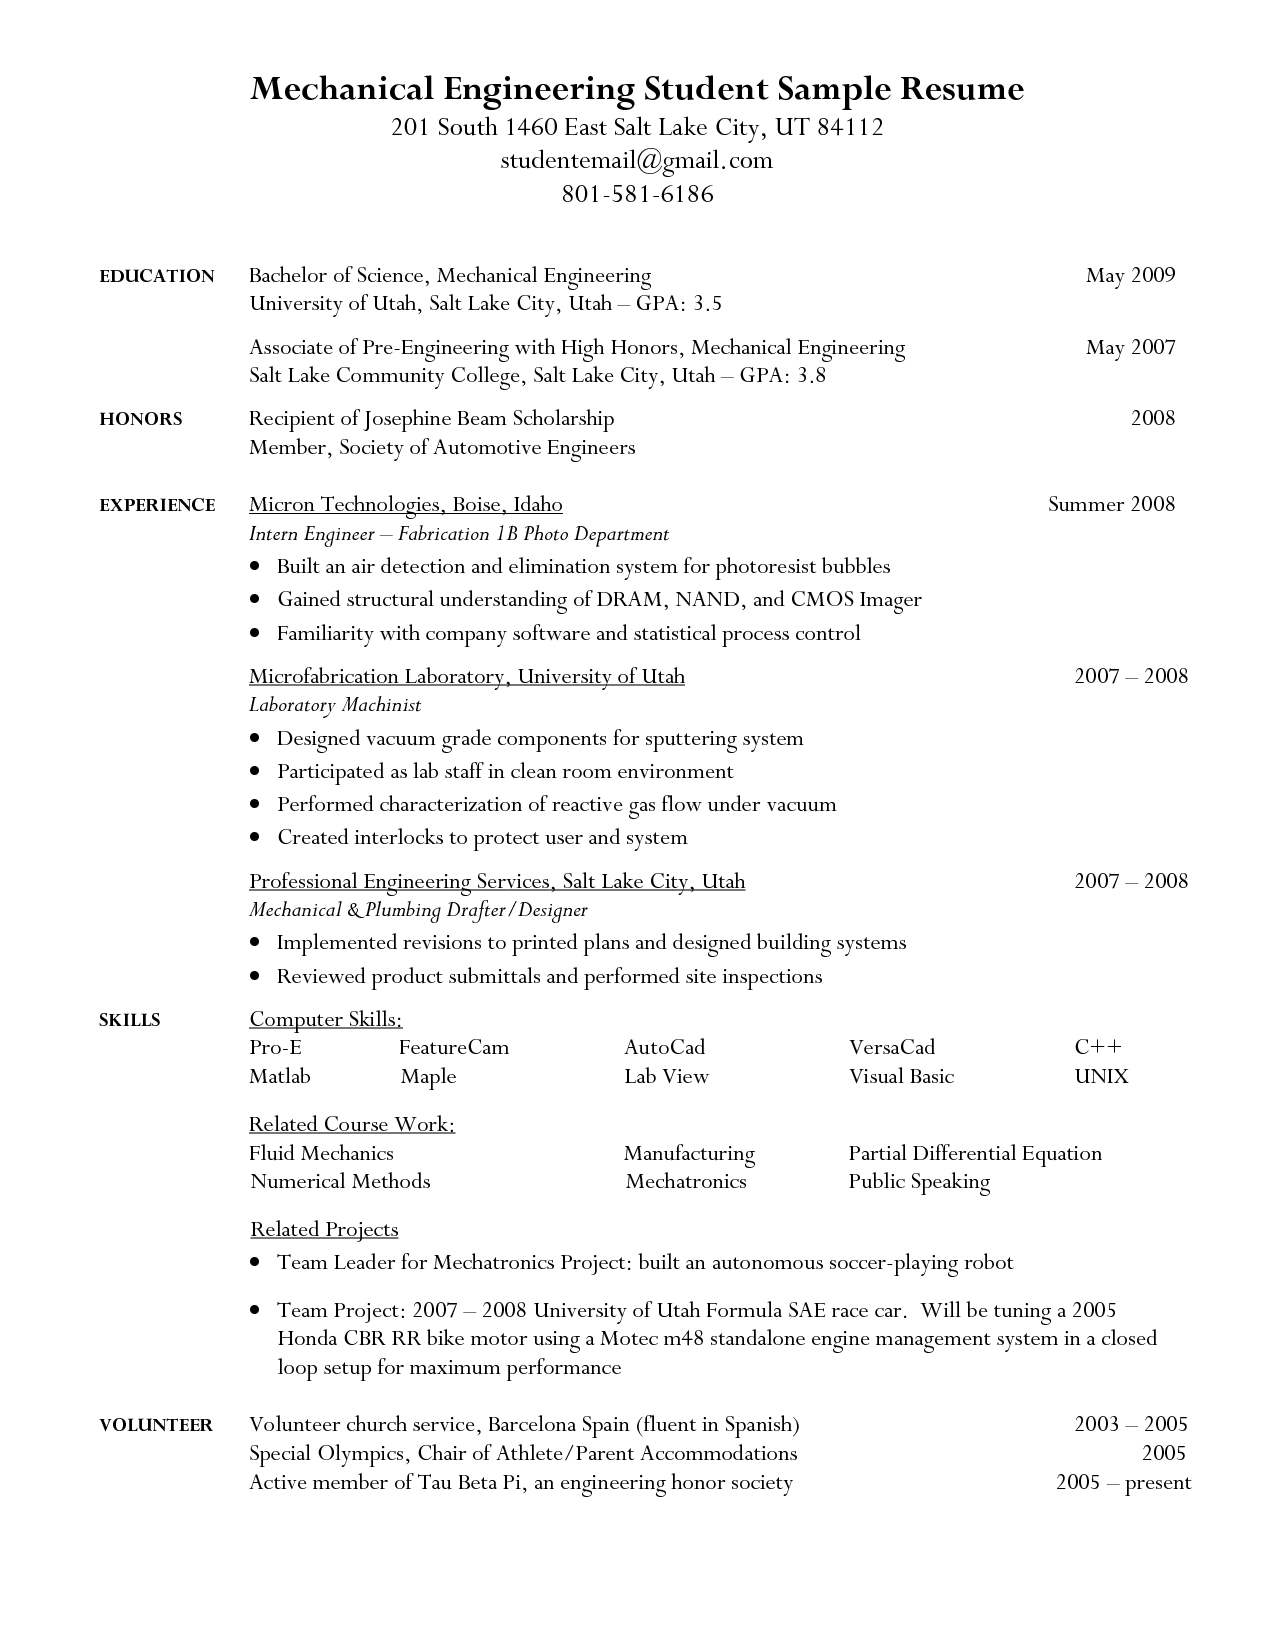 engineering student resume google search professional mechanical engineering student resume sample